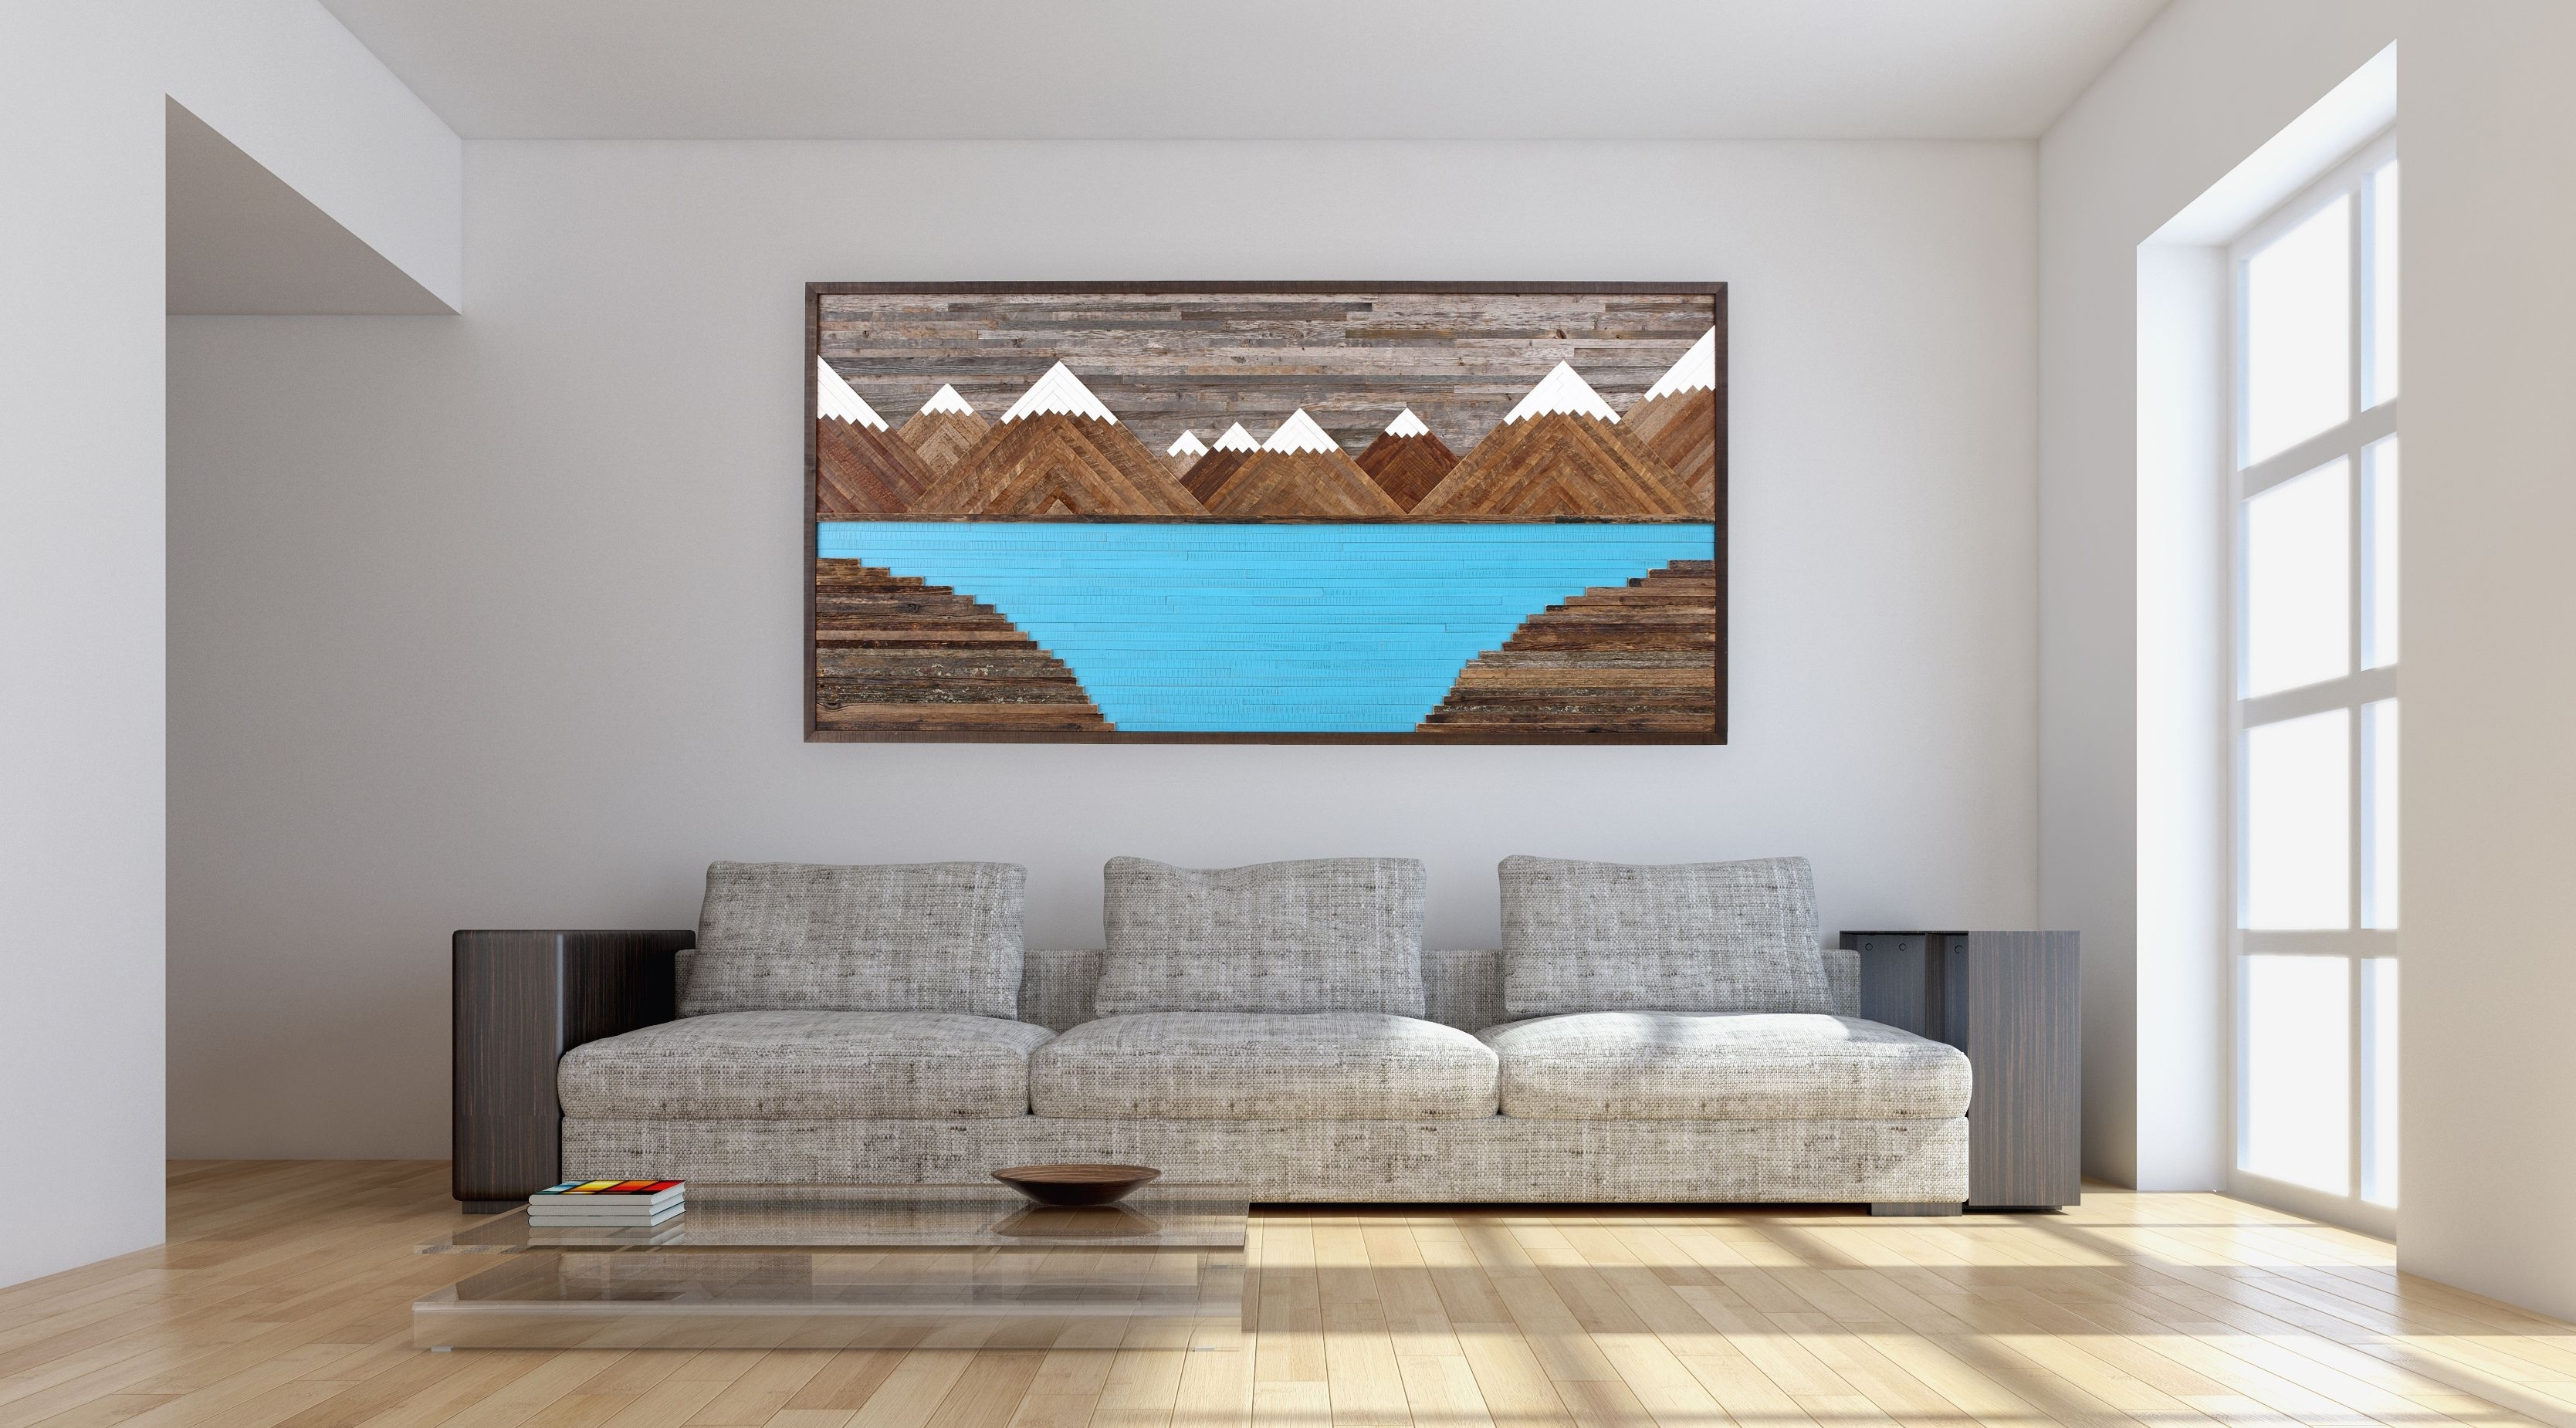 Handmade Glacier Mountain Landscape, Wood Wall Art, Reclaimed Wood Inside Most Popular Rustic Wall Art (View 5 of 15)